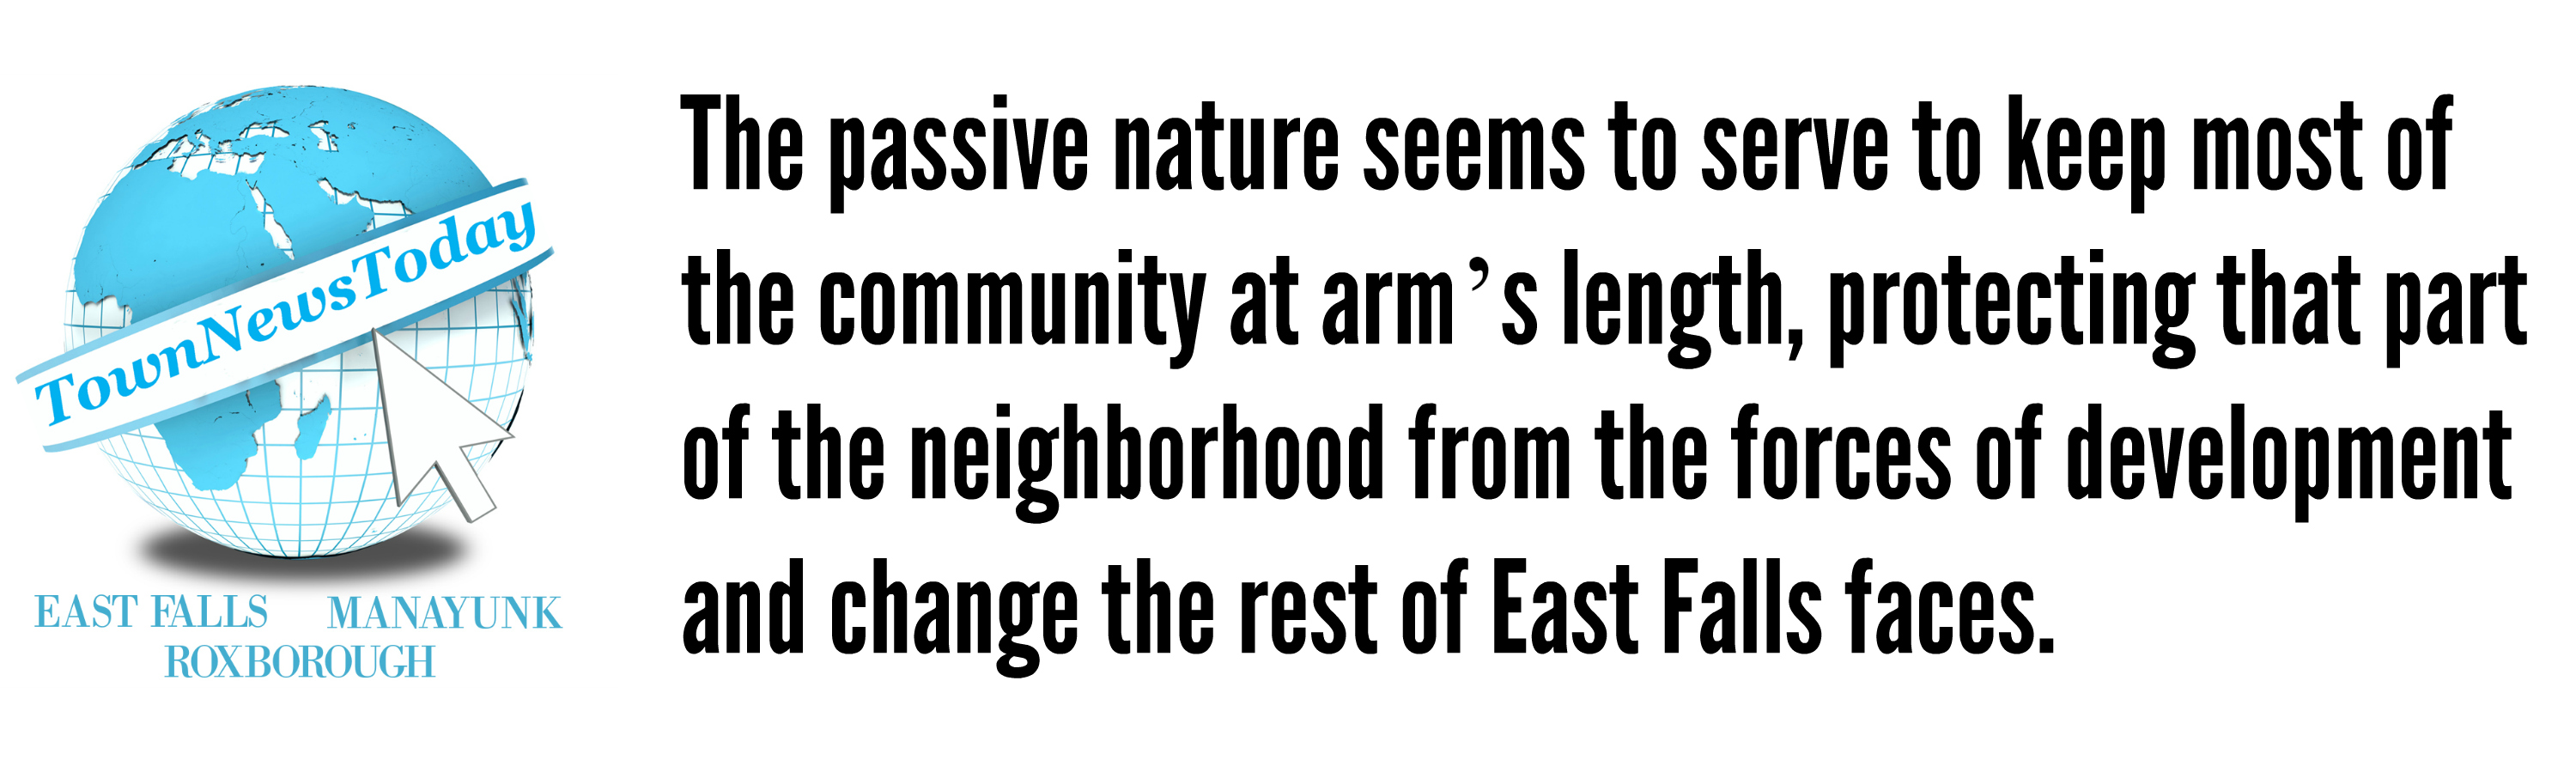 EastFallsLocal Judy Quote keep the community at arms length